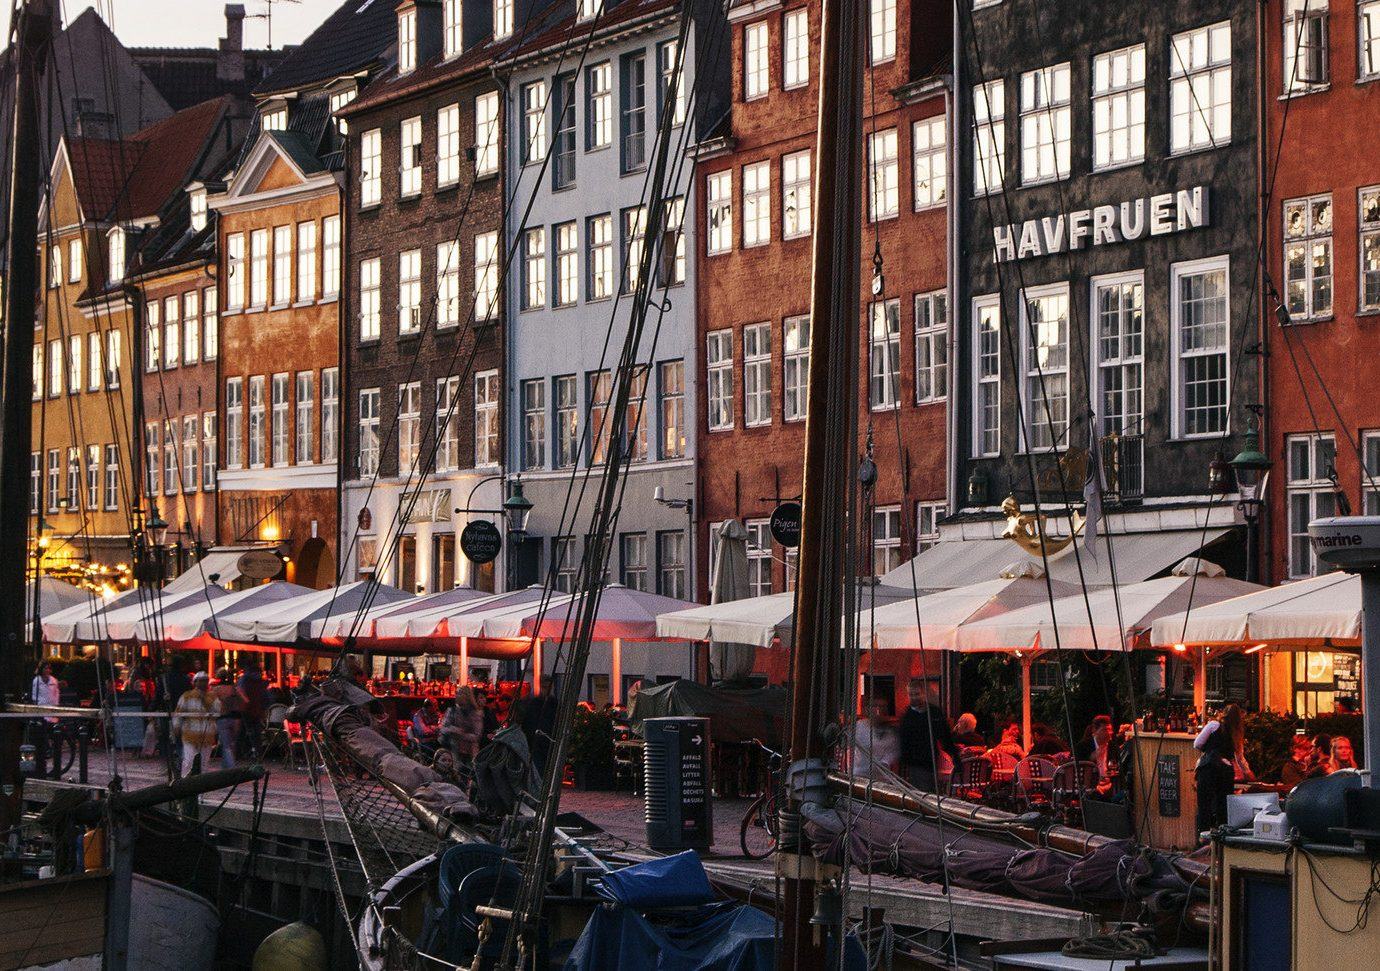 Copenhagen Denmark Trip Ideas building outdoor Town City road urban area human settlement cityscape street vehicle waterway apartment building Downtown Canal infrastructure